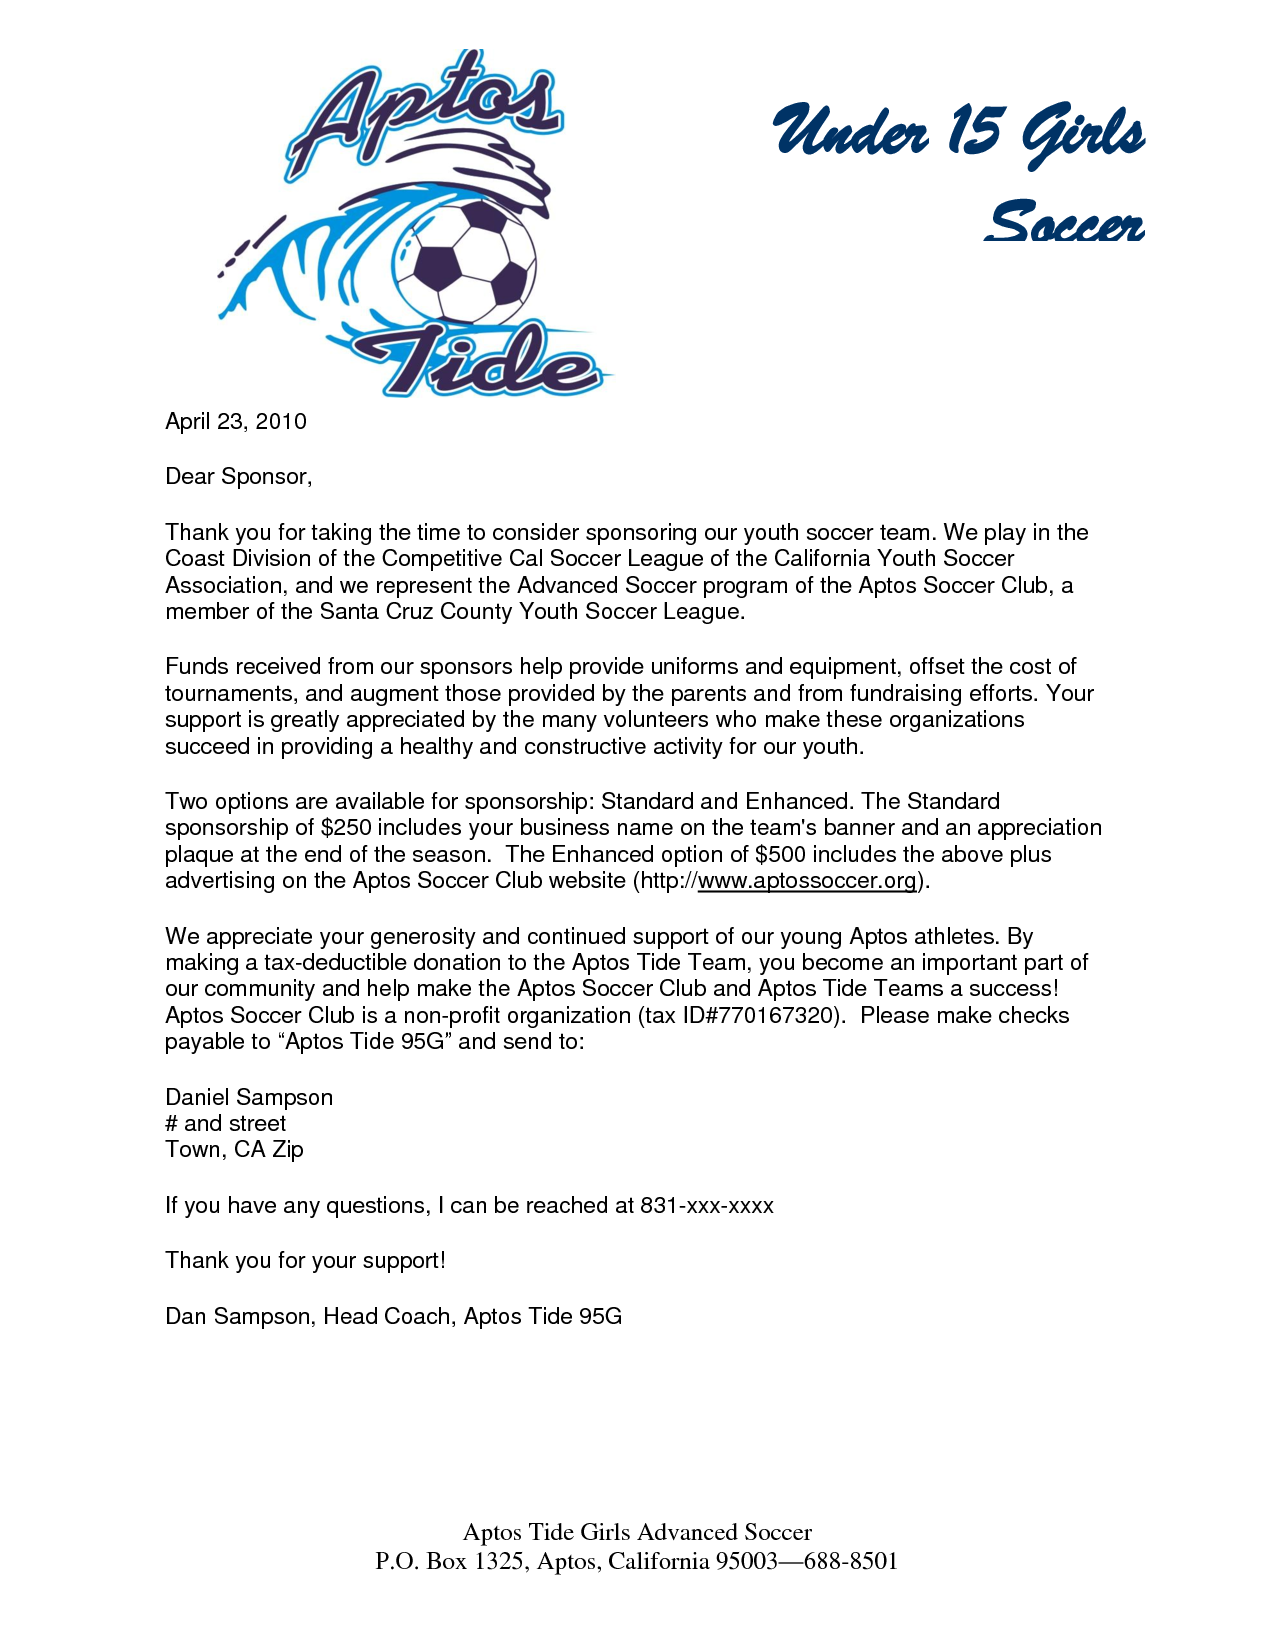 Parent thank you letter from youth athletes sponsorship letter parent thank you letter from youth athletes sponsorship letter sample altavistaventures